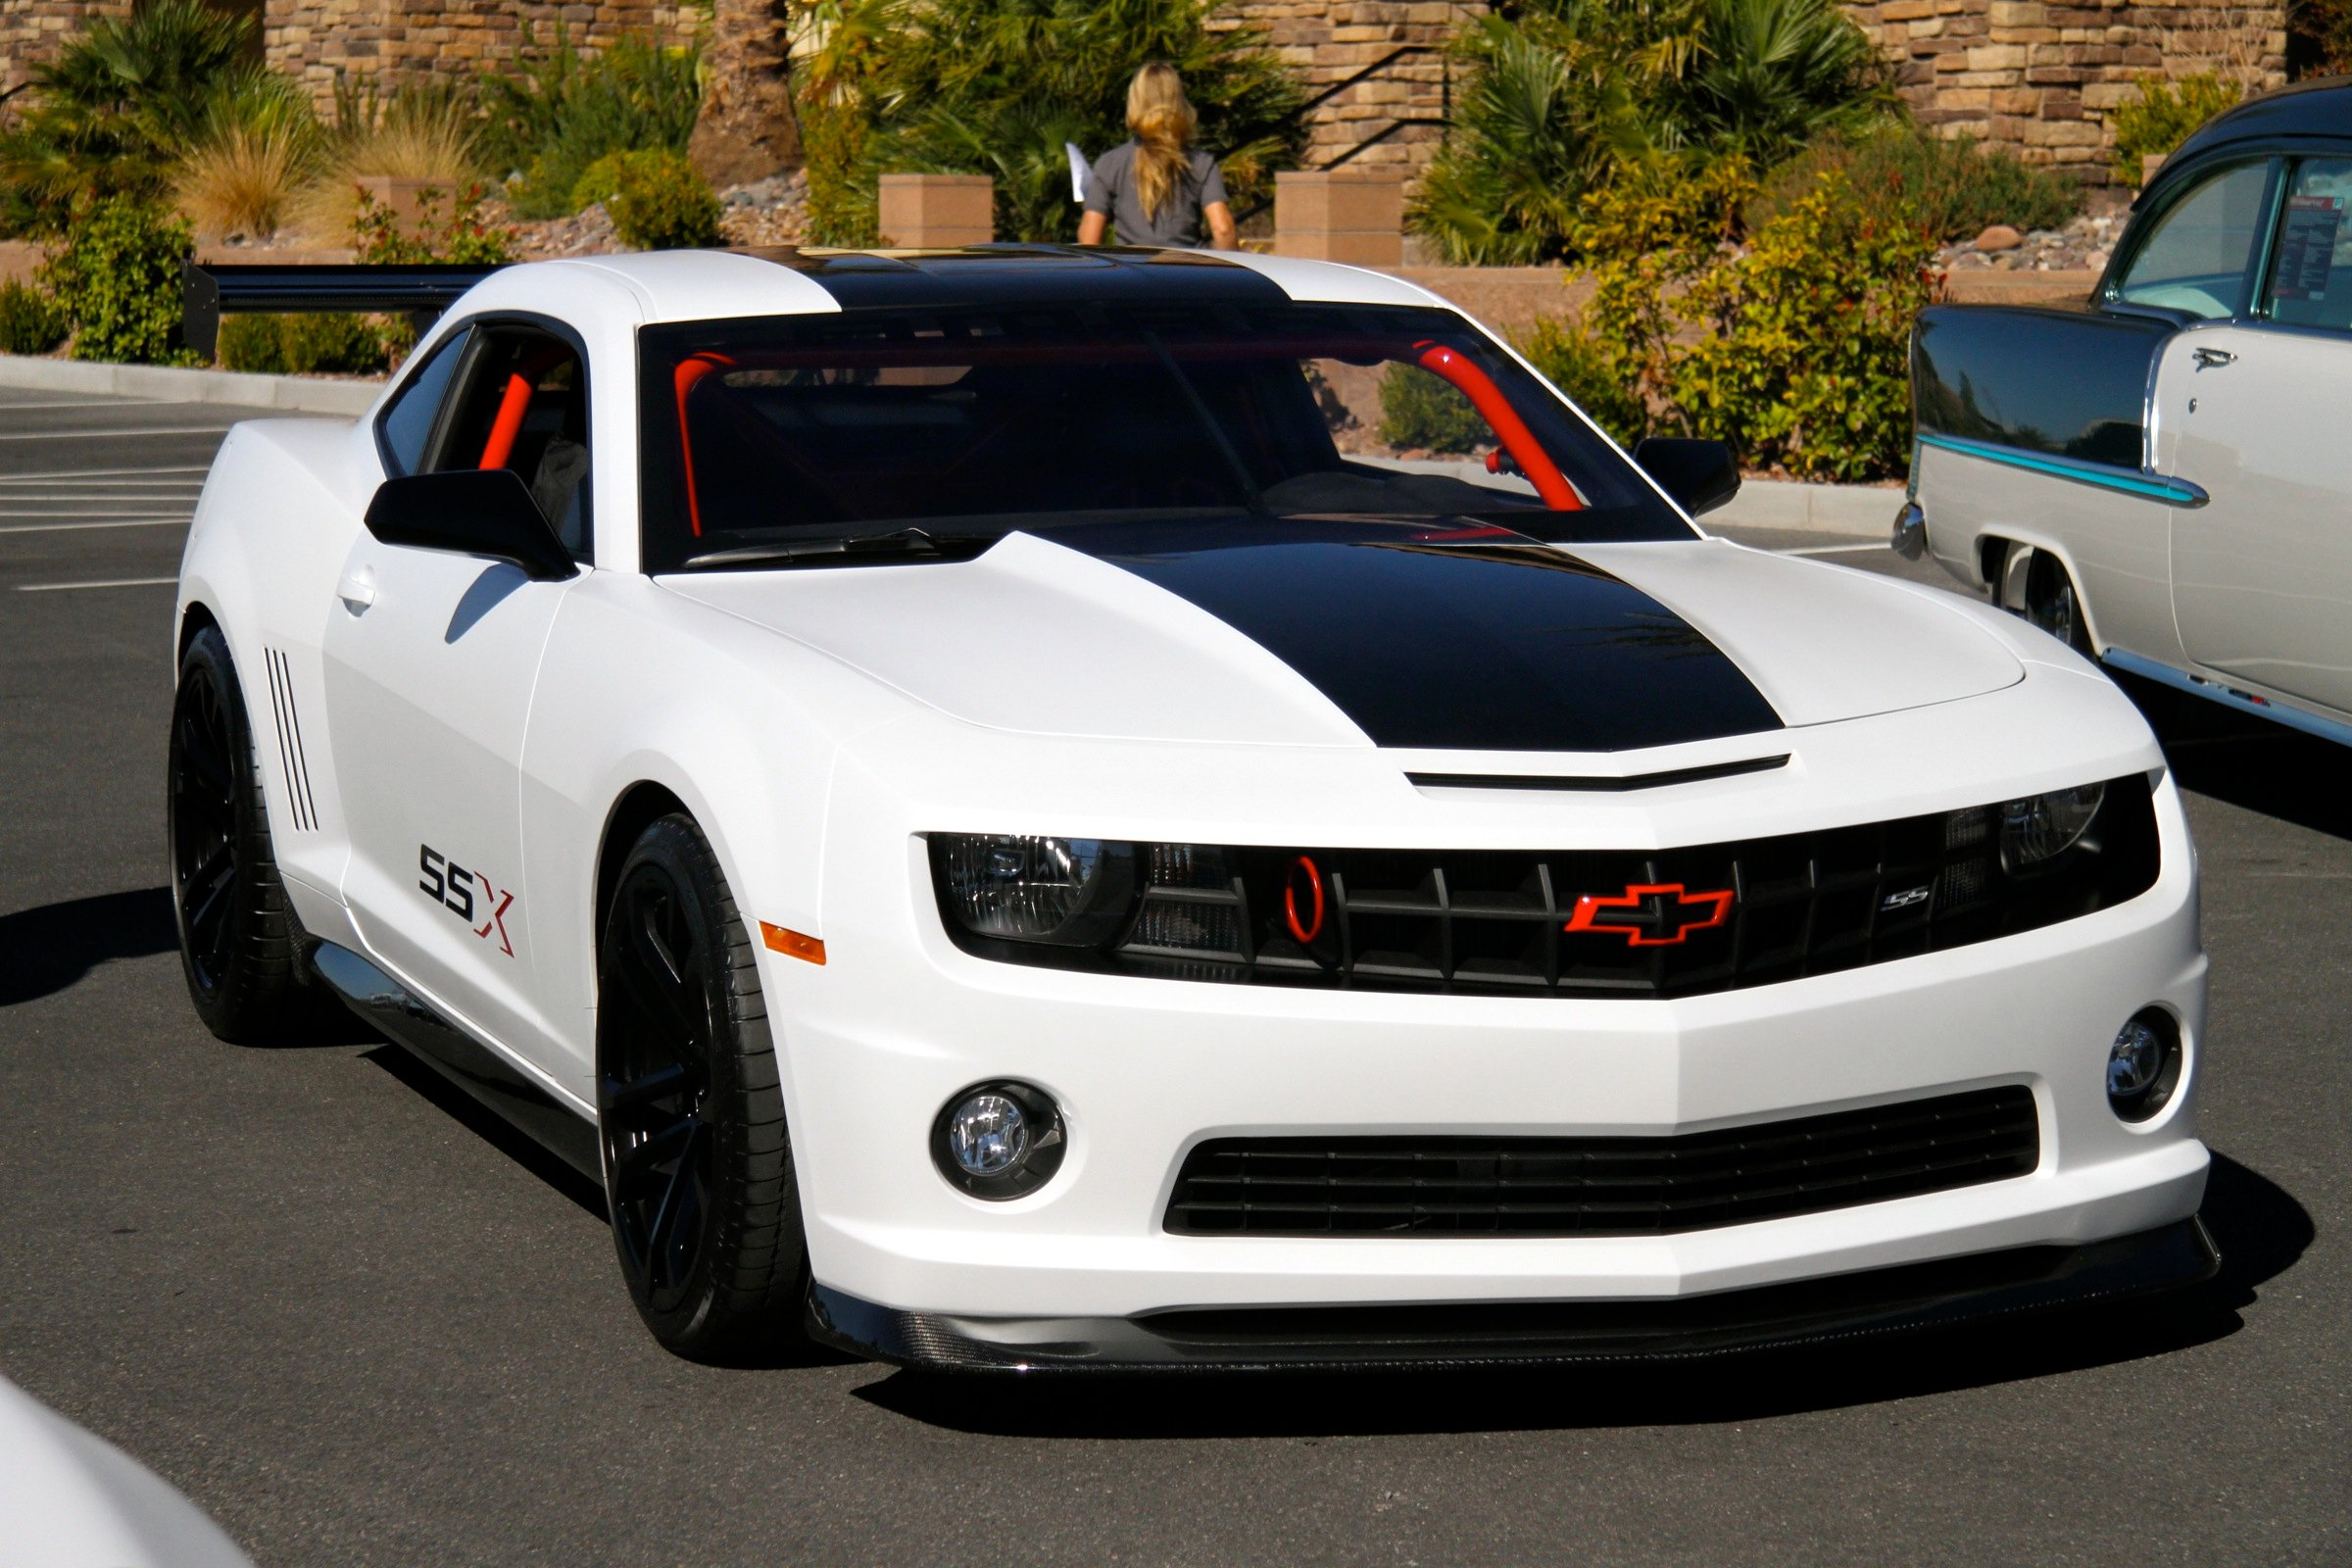 chevy camaro ssx track car concept thunders into sema. Black Bedroom Furniture Sets. Home Design Ideas